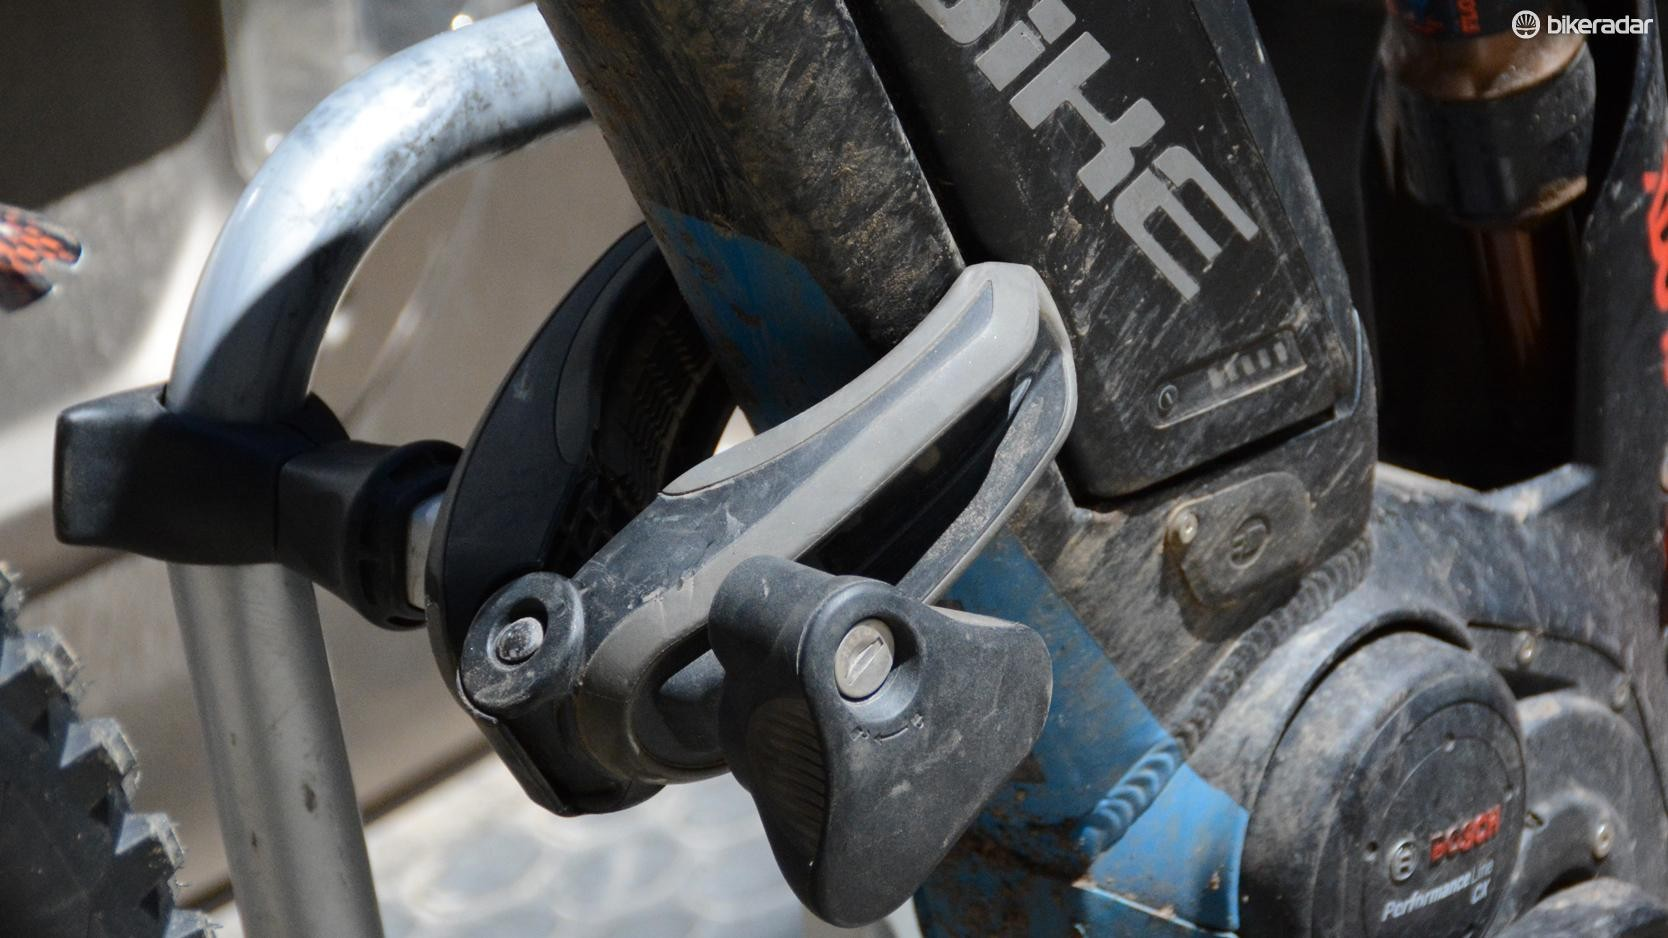 The claw has a torque limiter to prevent over tightening on bike frames